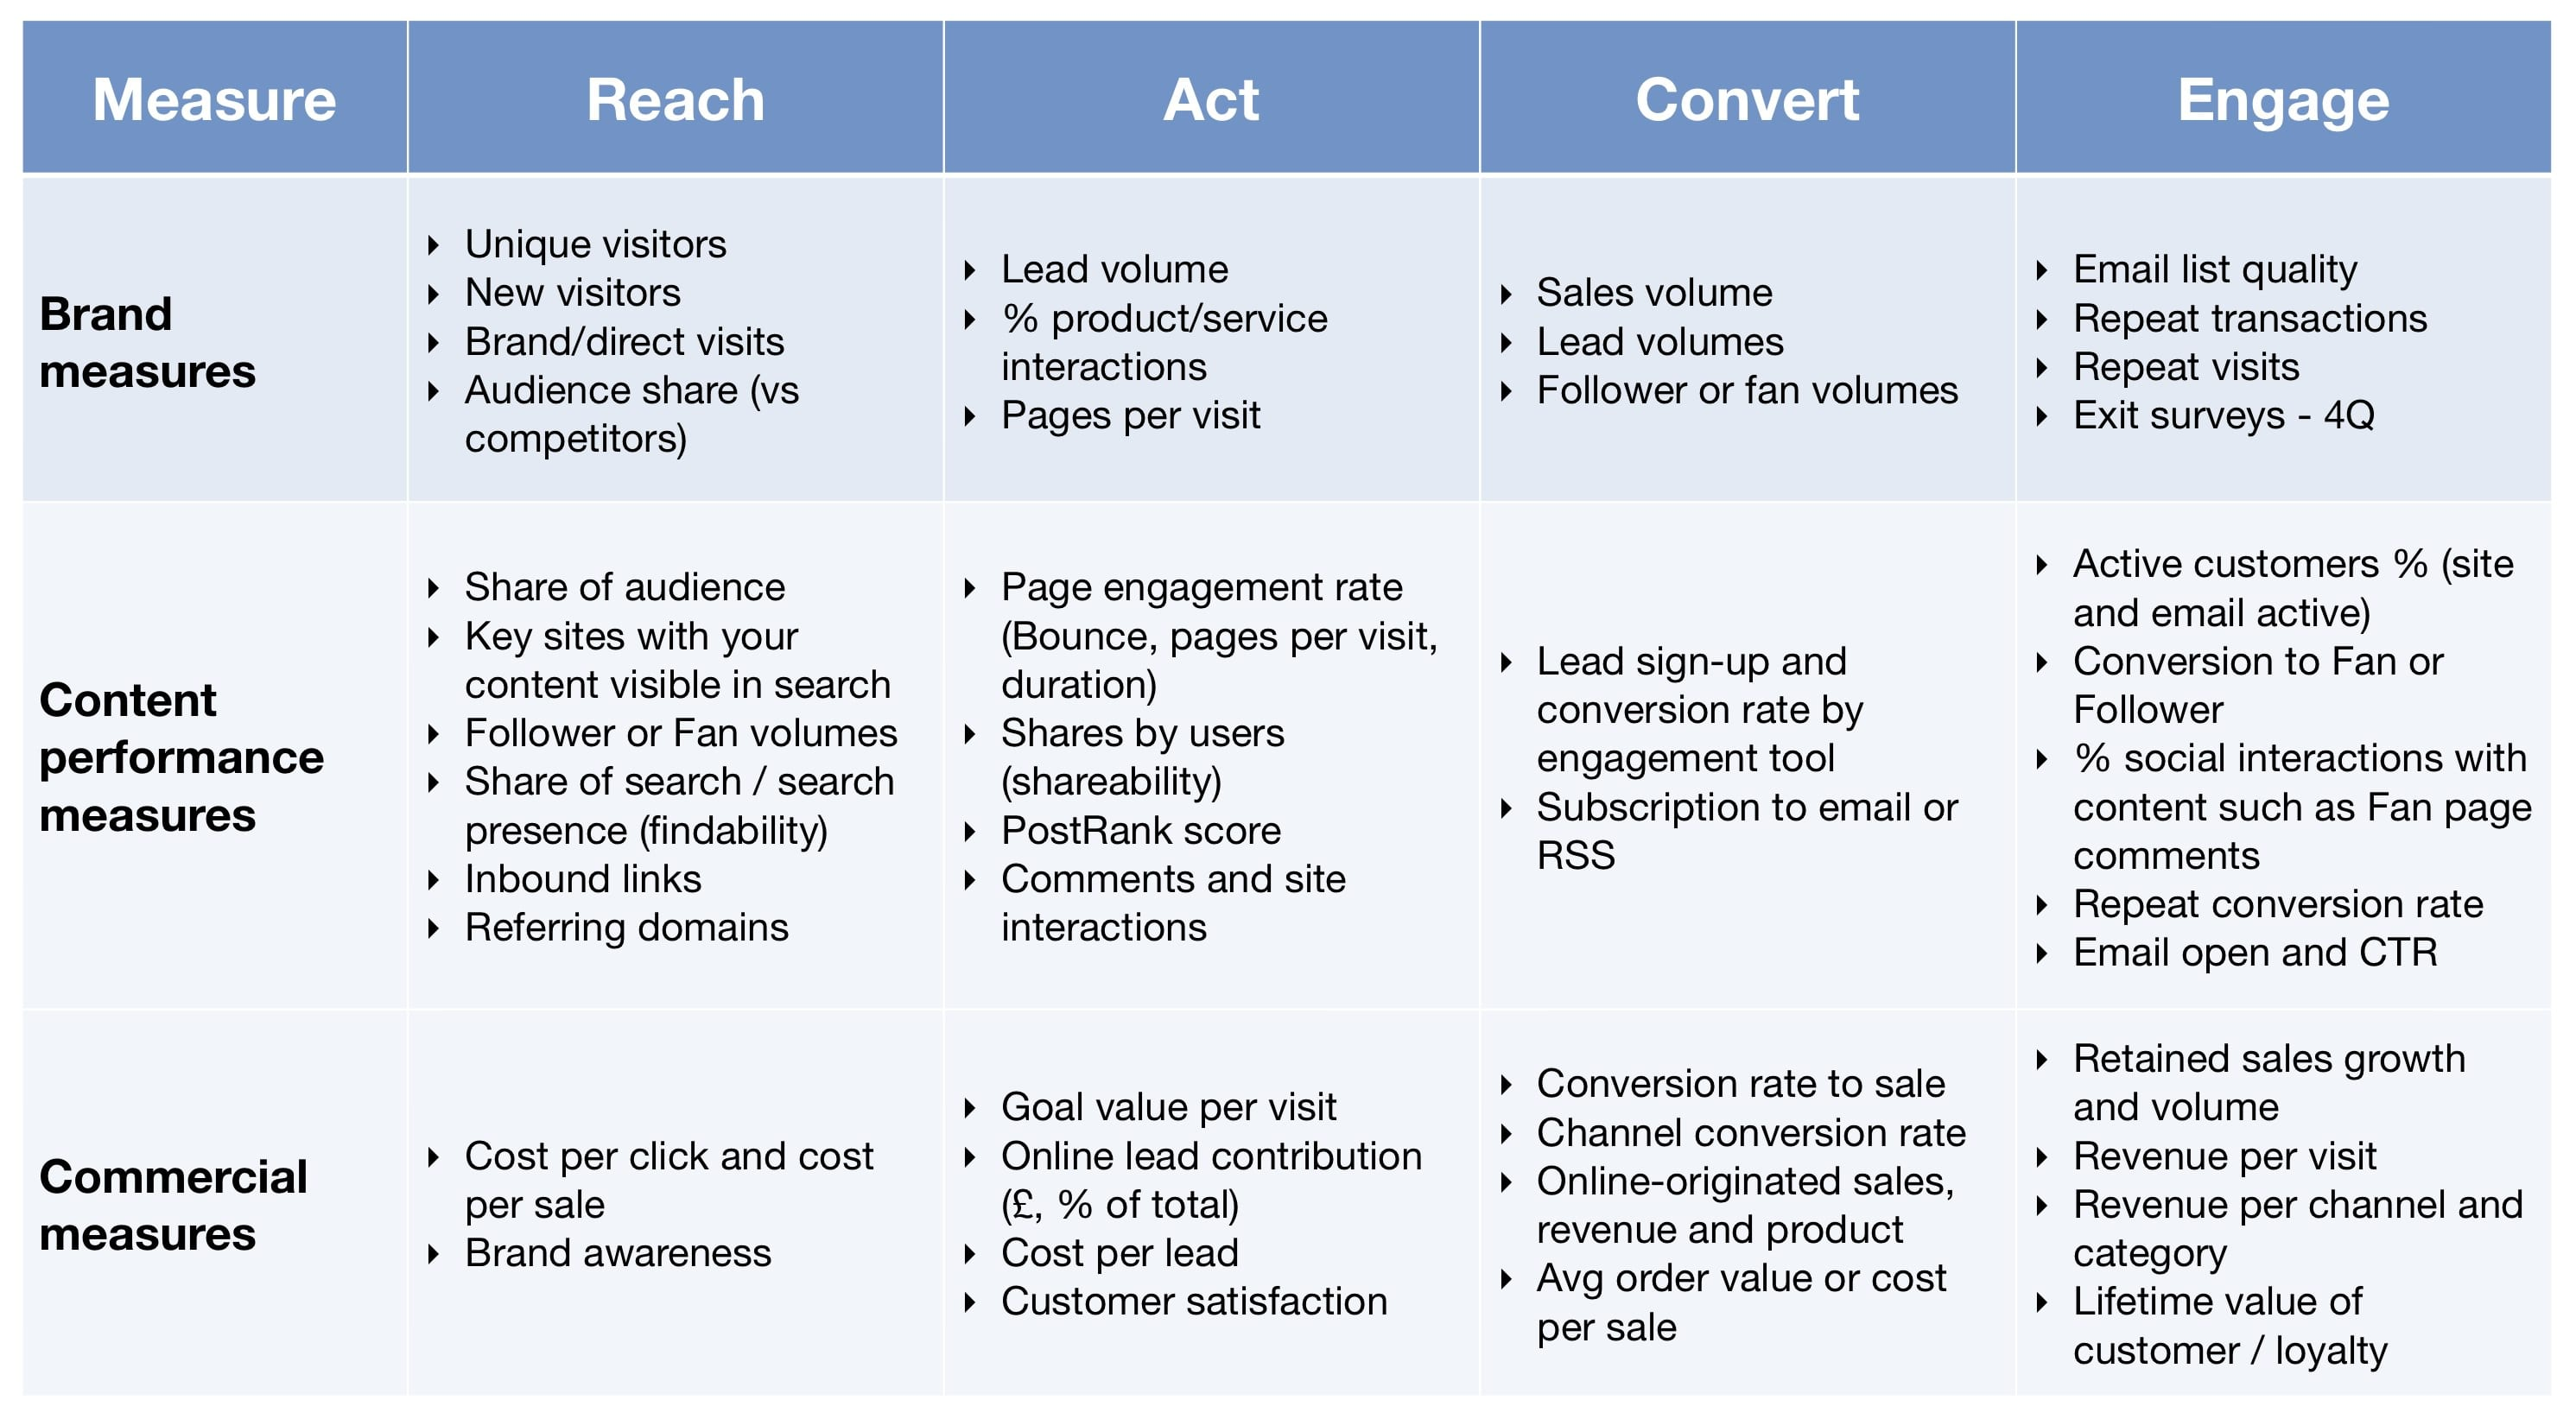 Content Measures Smart Insights